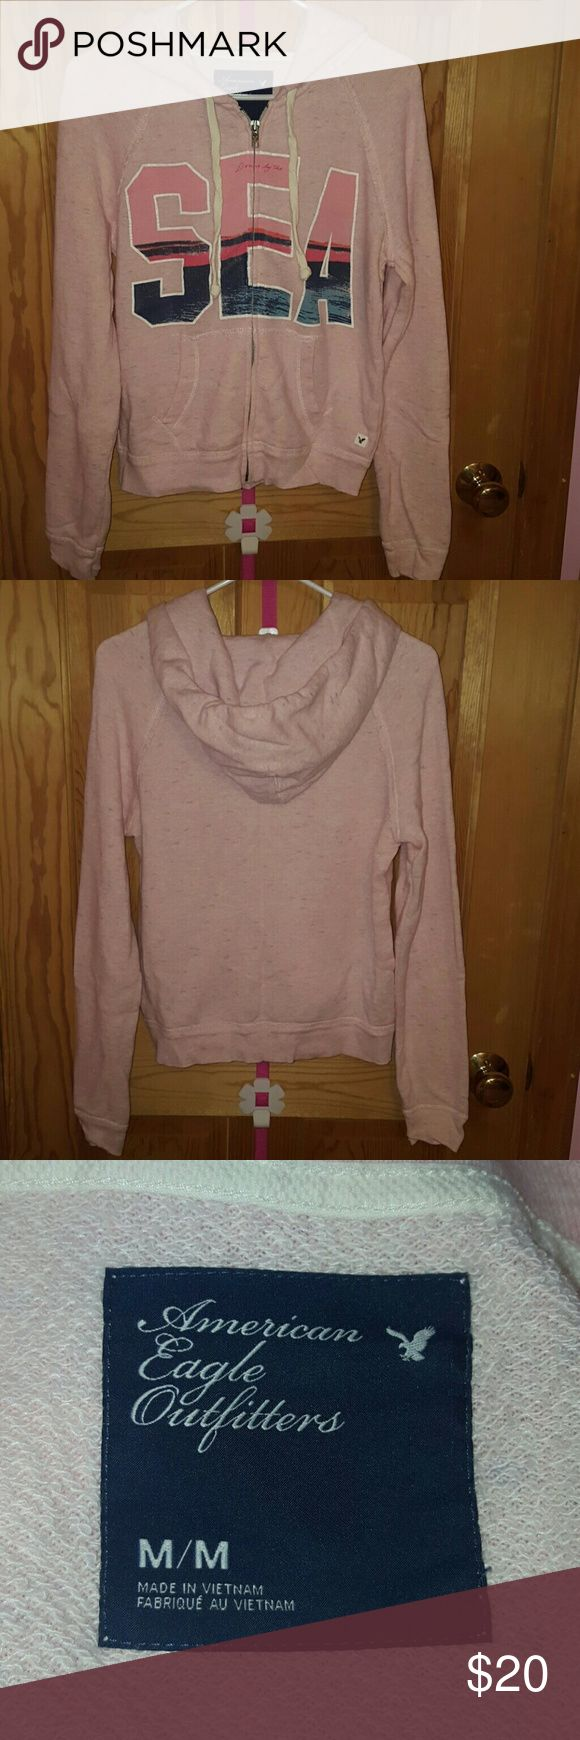 American Eagle Sweatshirt I got this one as a gift so there is no tag. However, since it is size M, it's too big for me. Never be worn. American Eagle Outfitters Tops Sweatshirts & Hoodies